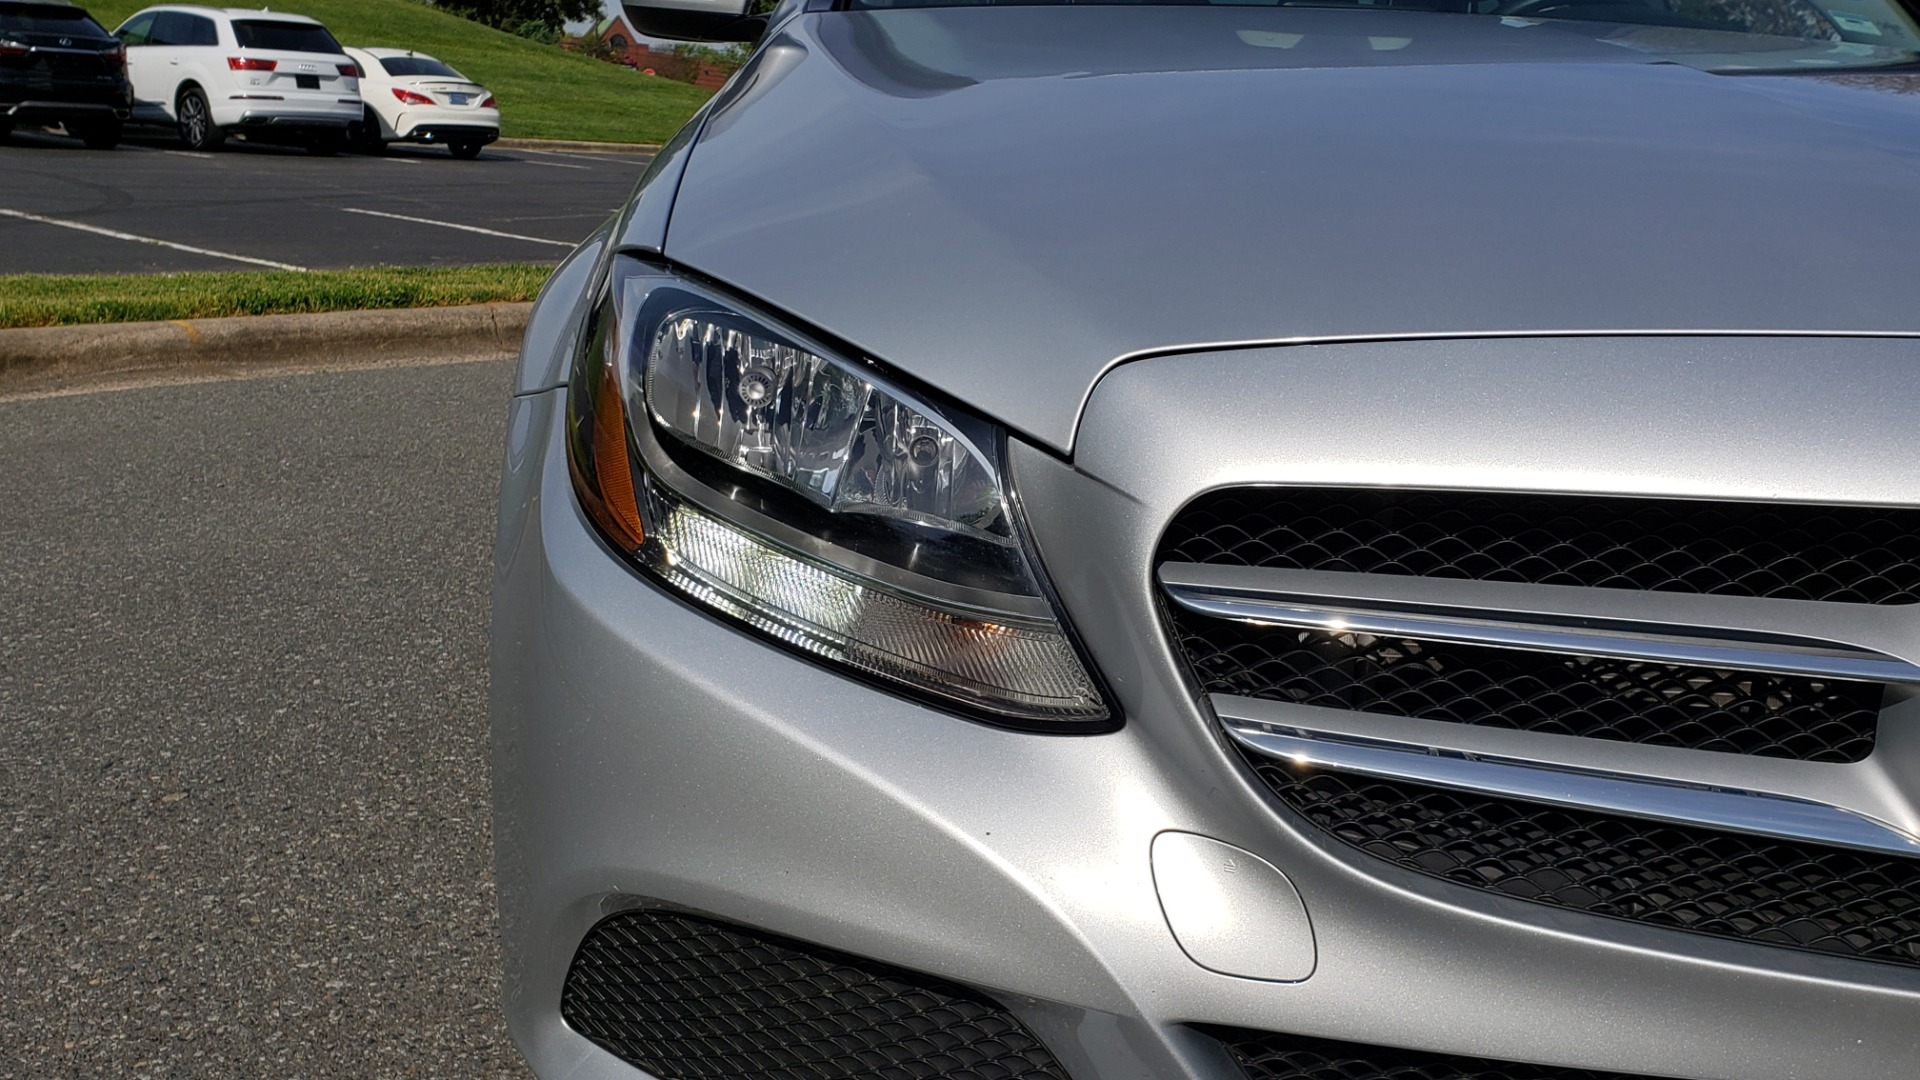 Used 2016 Mercedes-Benz C-CLASS C 300 PREMIUM / NAV / SNRF/ HTD STS / REARVIEW / BSM for sale Sold at Formula Imports in Charlotte NC 28227 24